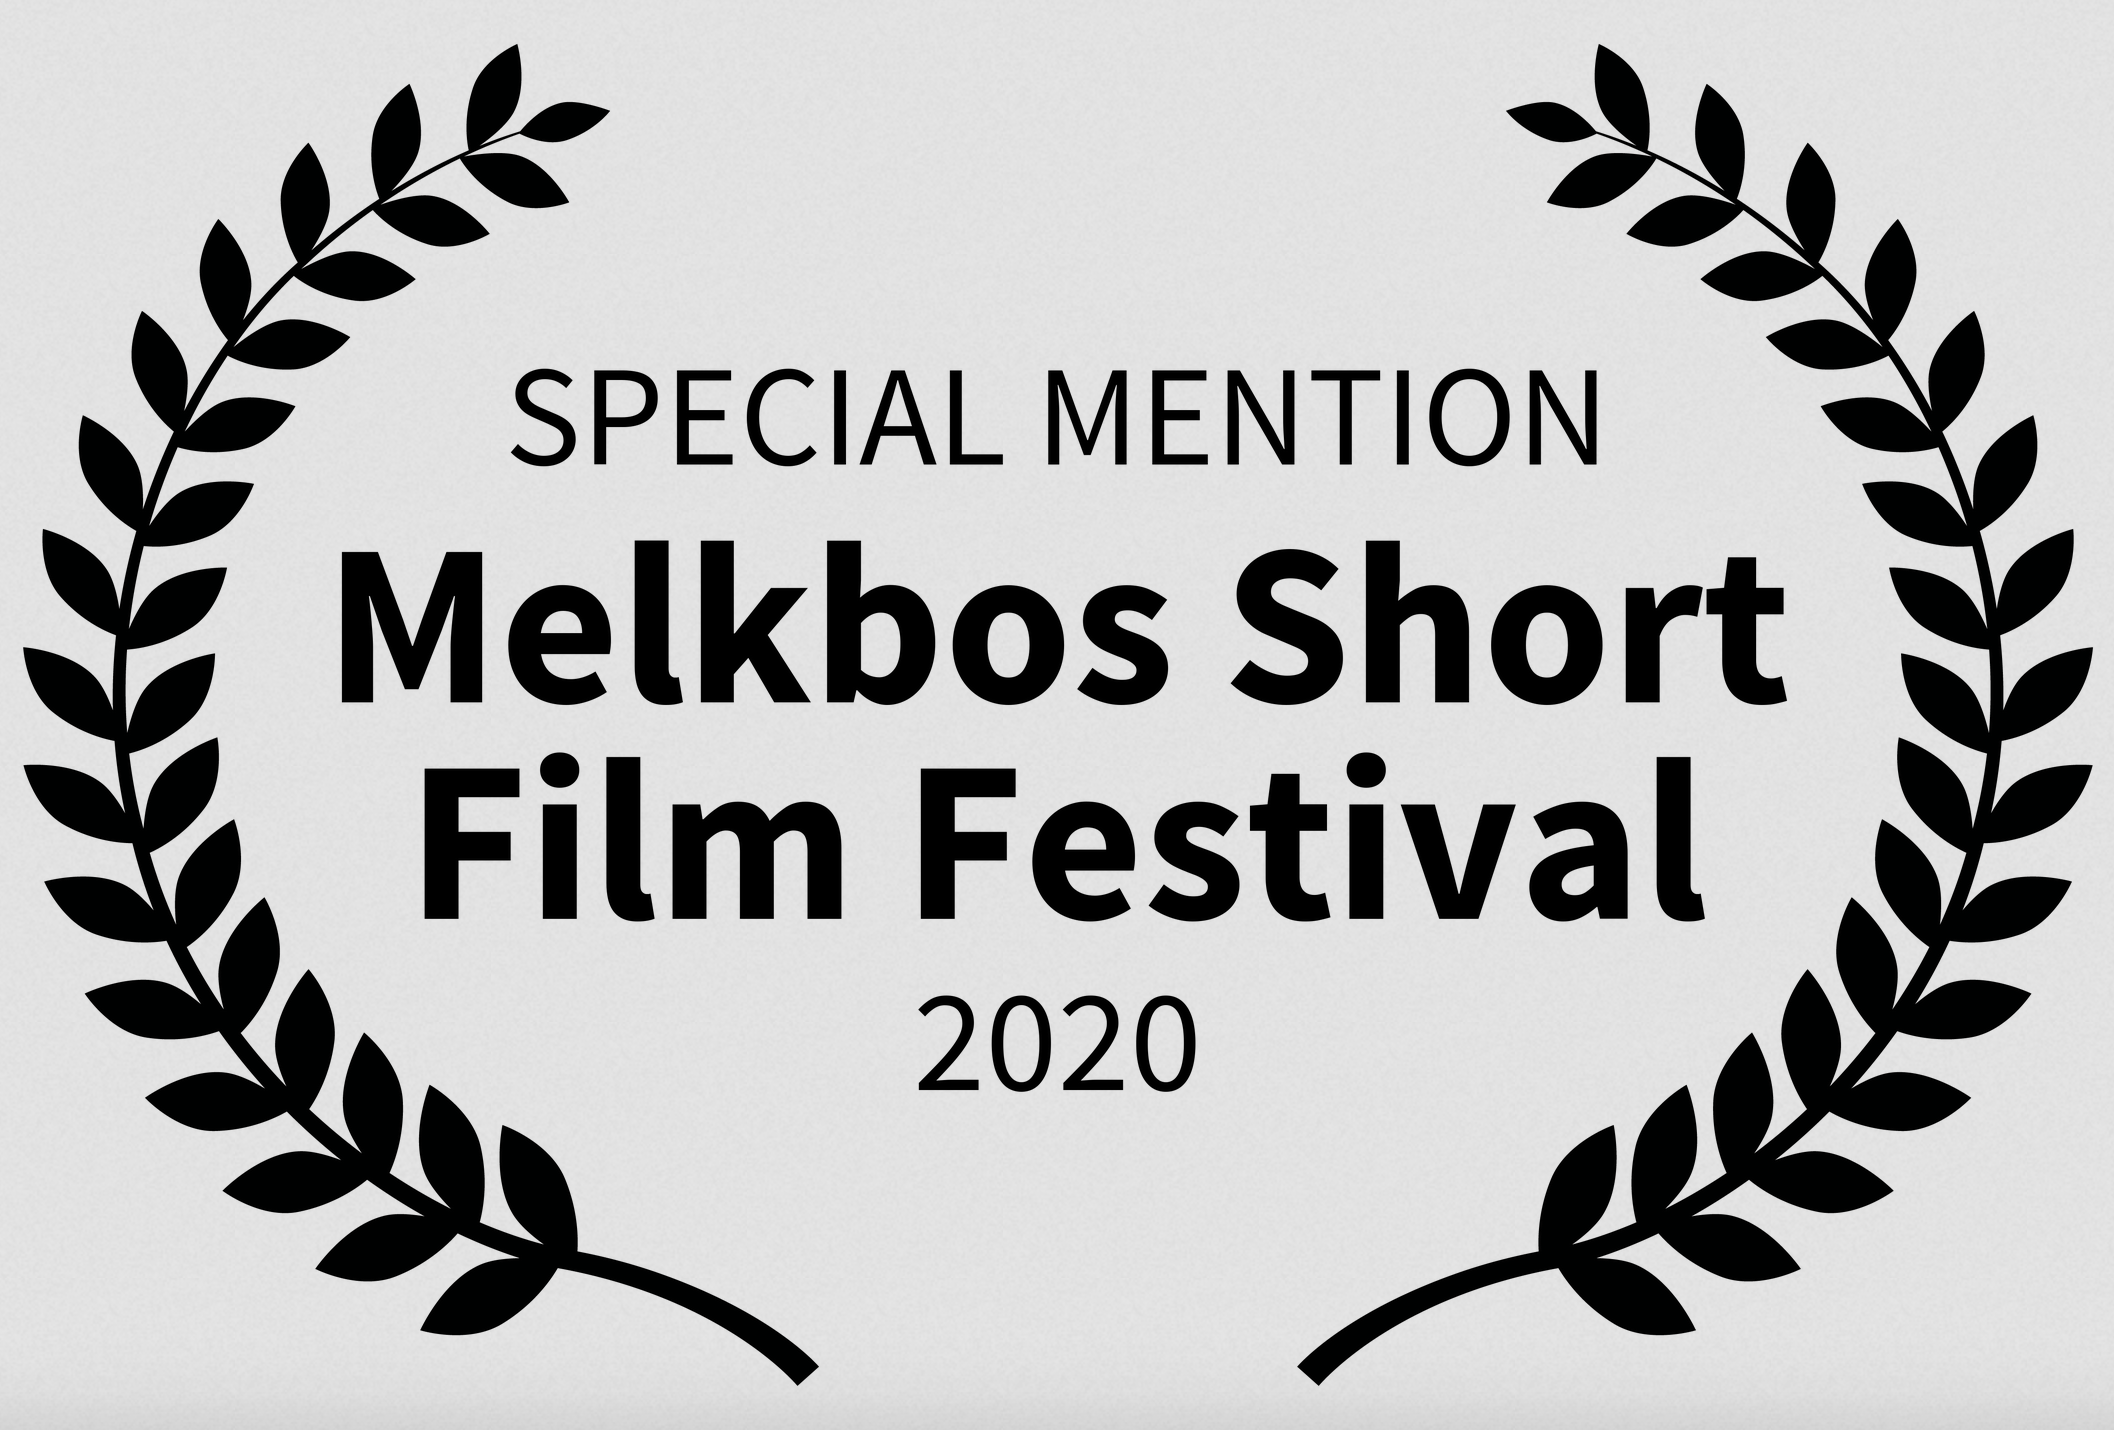 Melkbos special mention